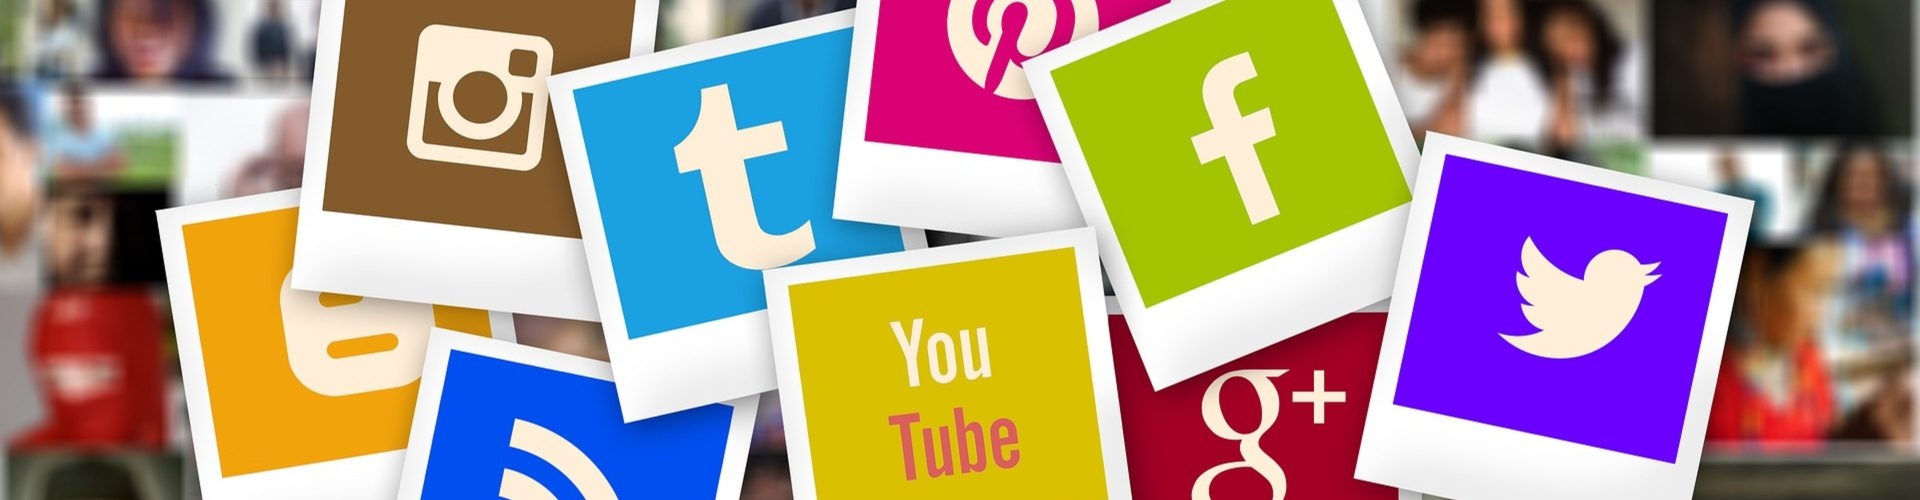 3 Simple Ways to Use Social Media to Engage with Customers